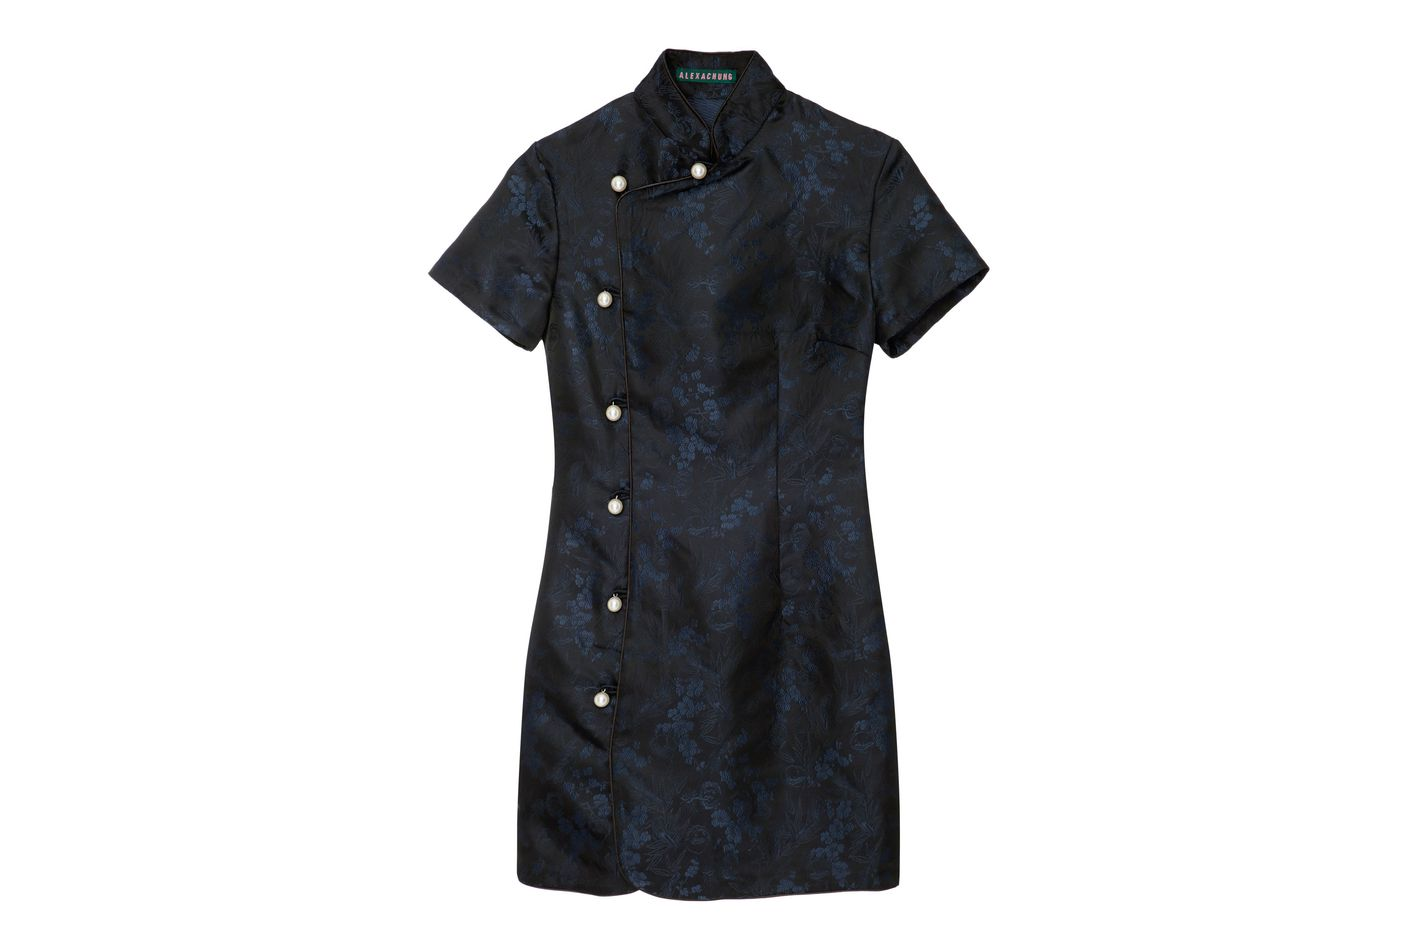 ALEXACHUNG Floral Jacquard Mandrain Collar Dress